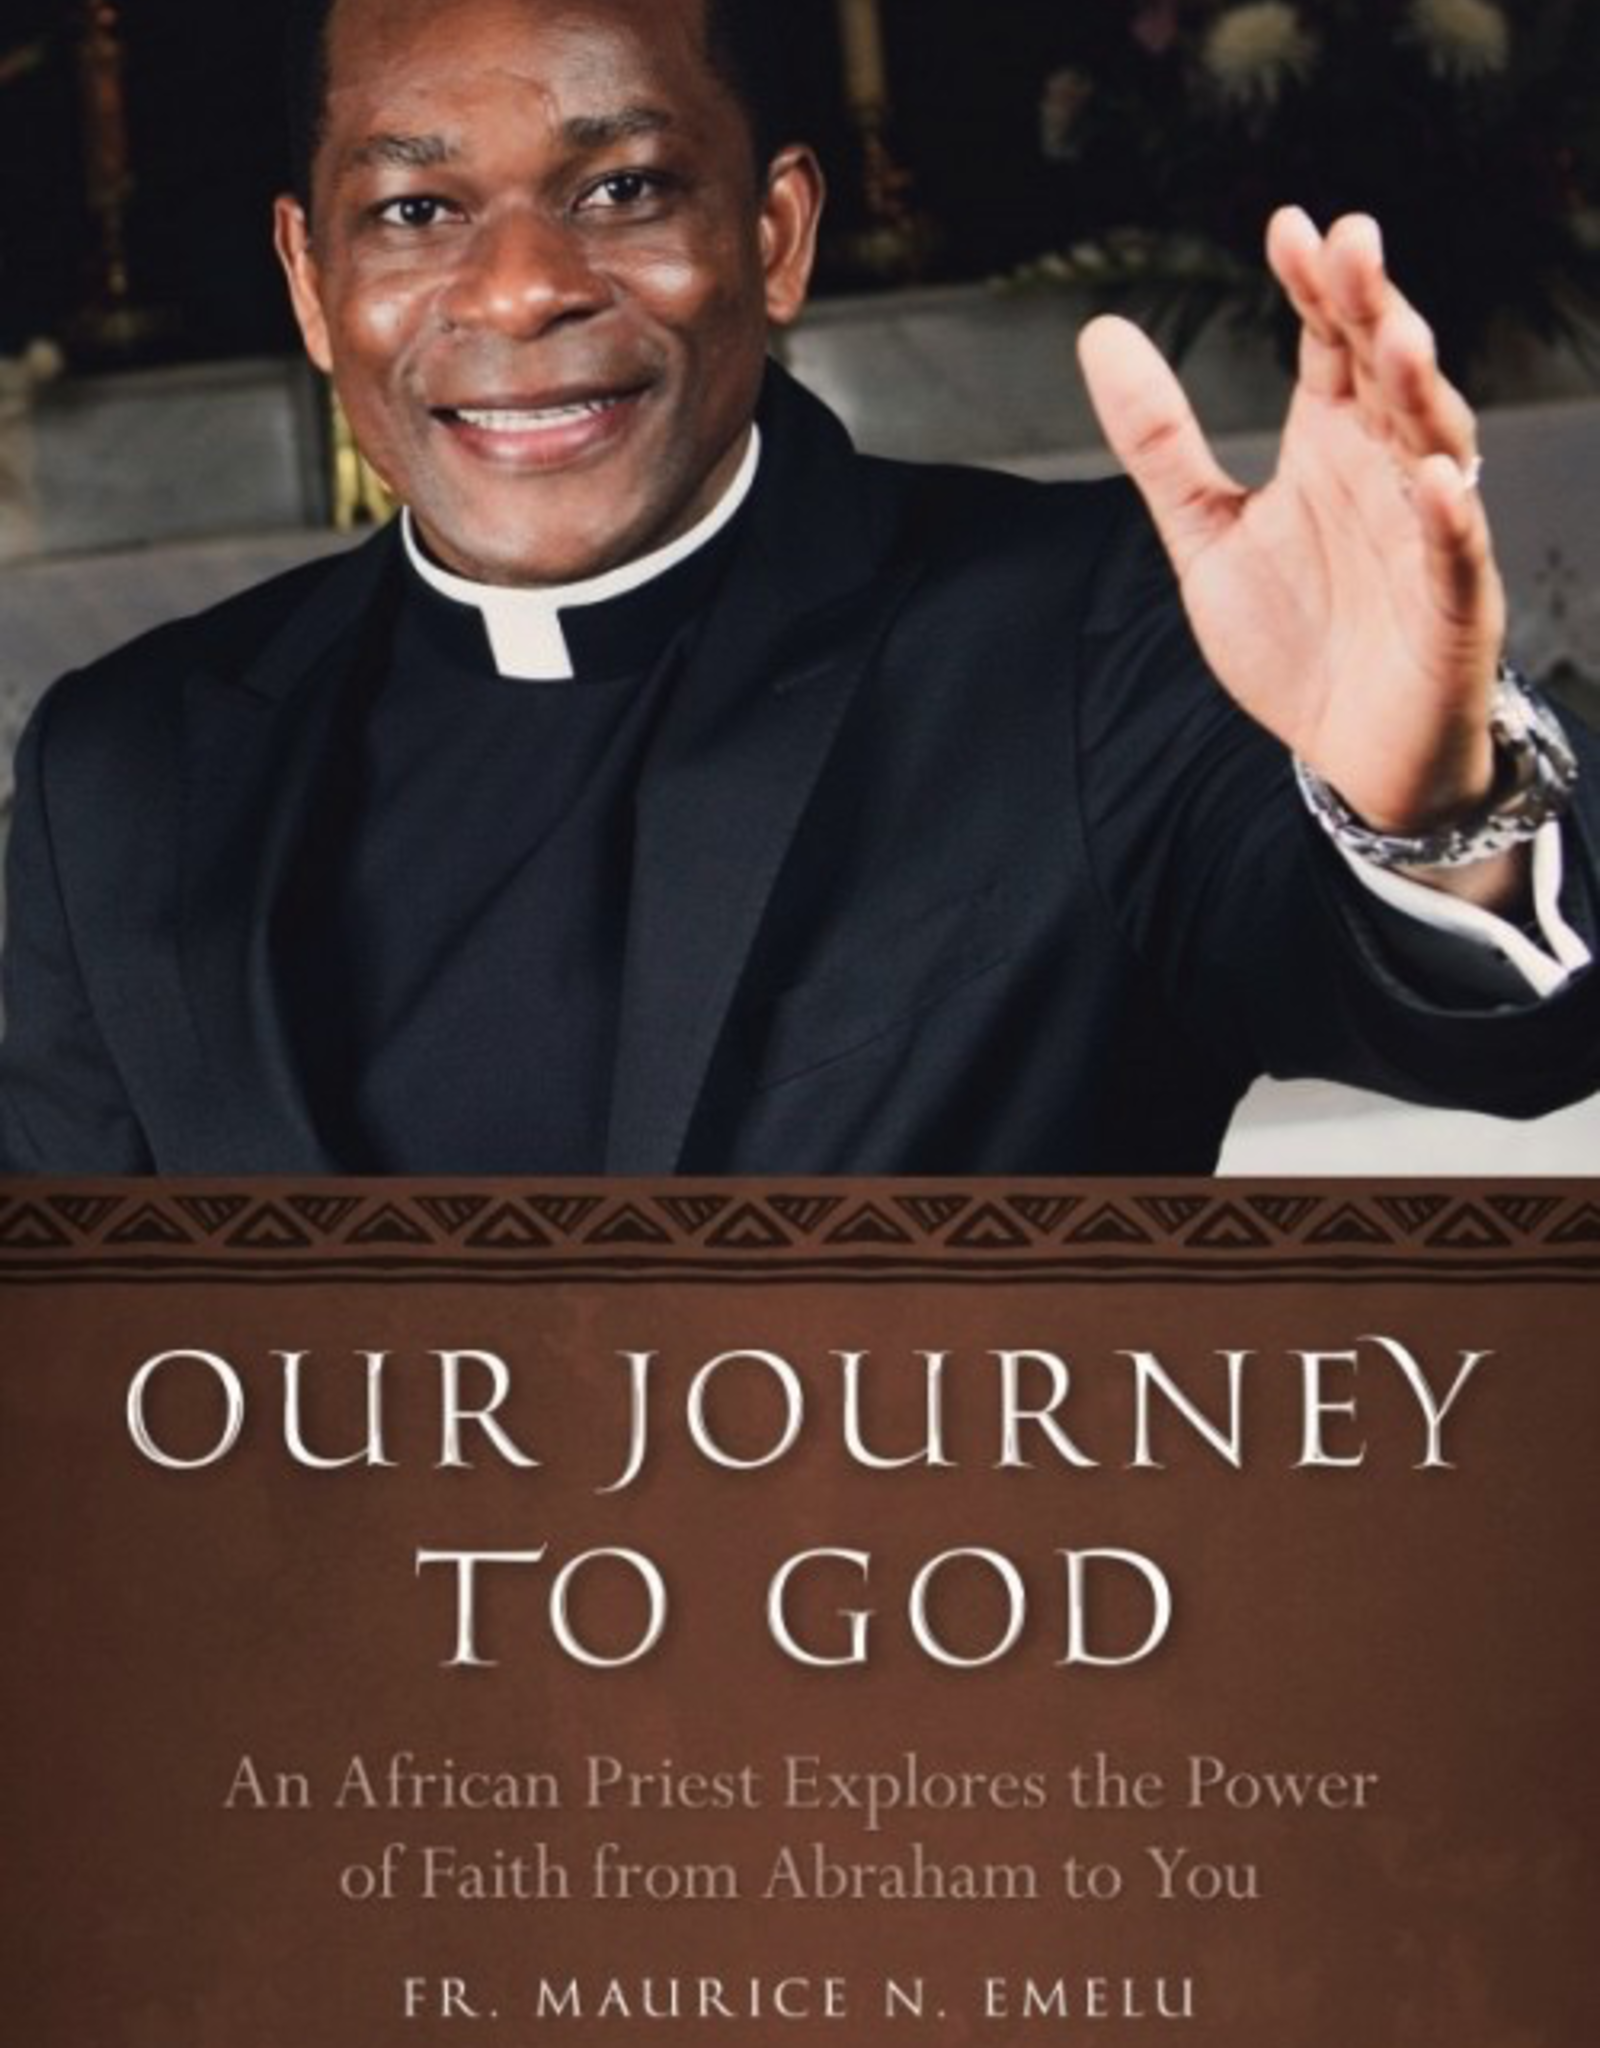 Sophia Institute Our Journey to God:An African Priest Explores the Power of Faith from Abraham to You, by Maurice Emelu (paperback)